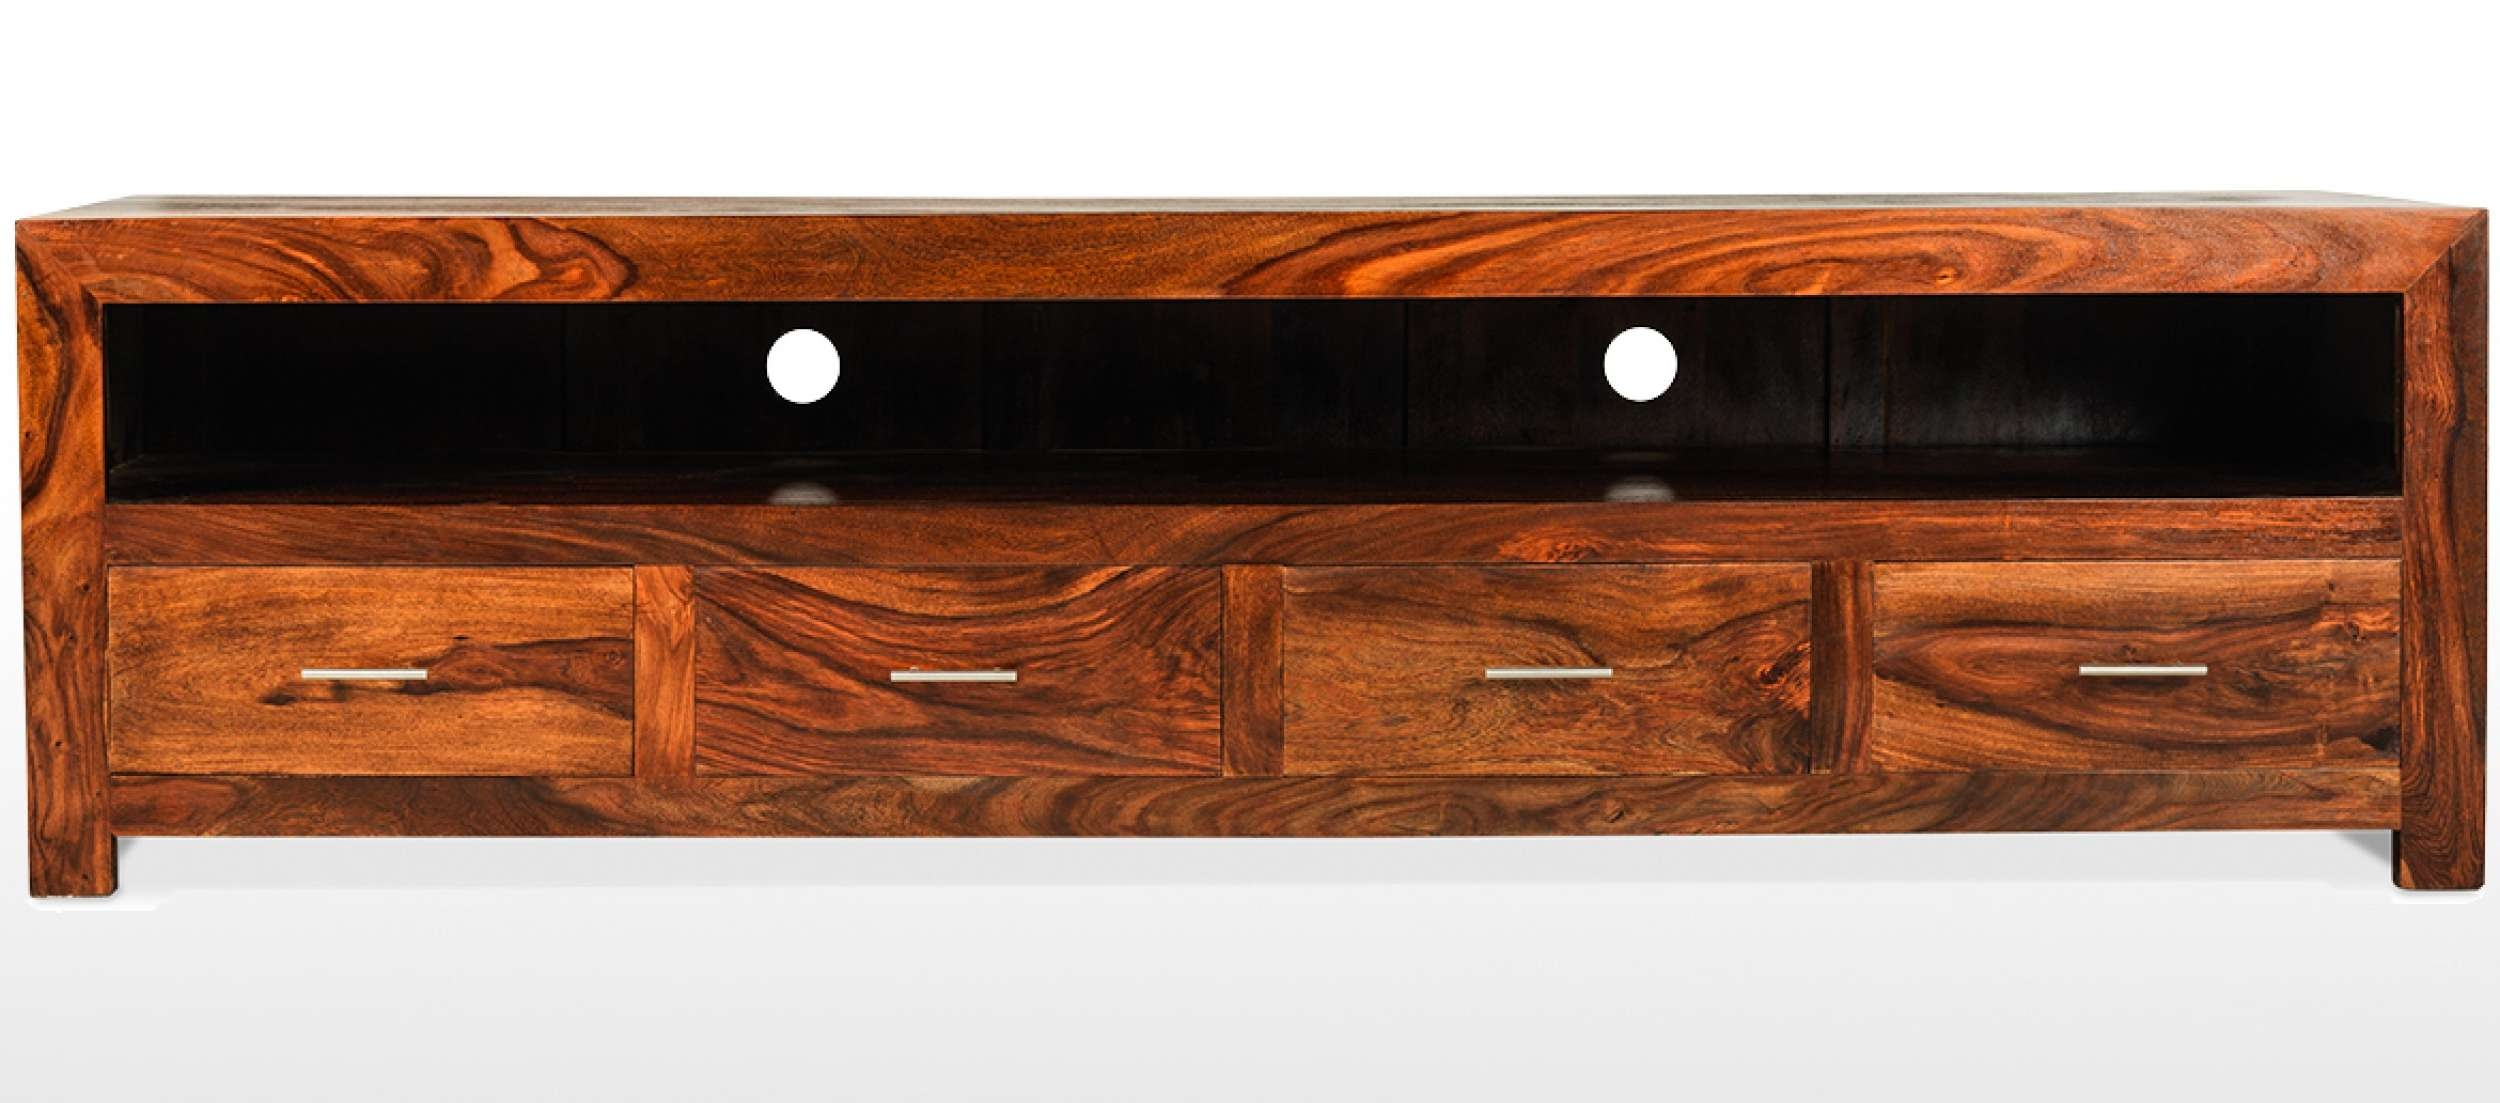 Cube Sheesham Long Plasma Tv Cabinet | Quercus Living For Wooden Tv Cabinets (View 5 of 20)